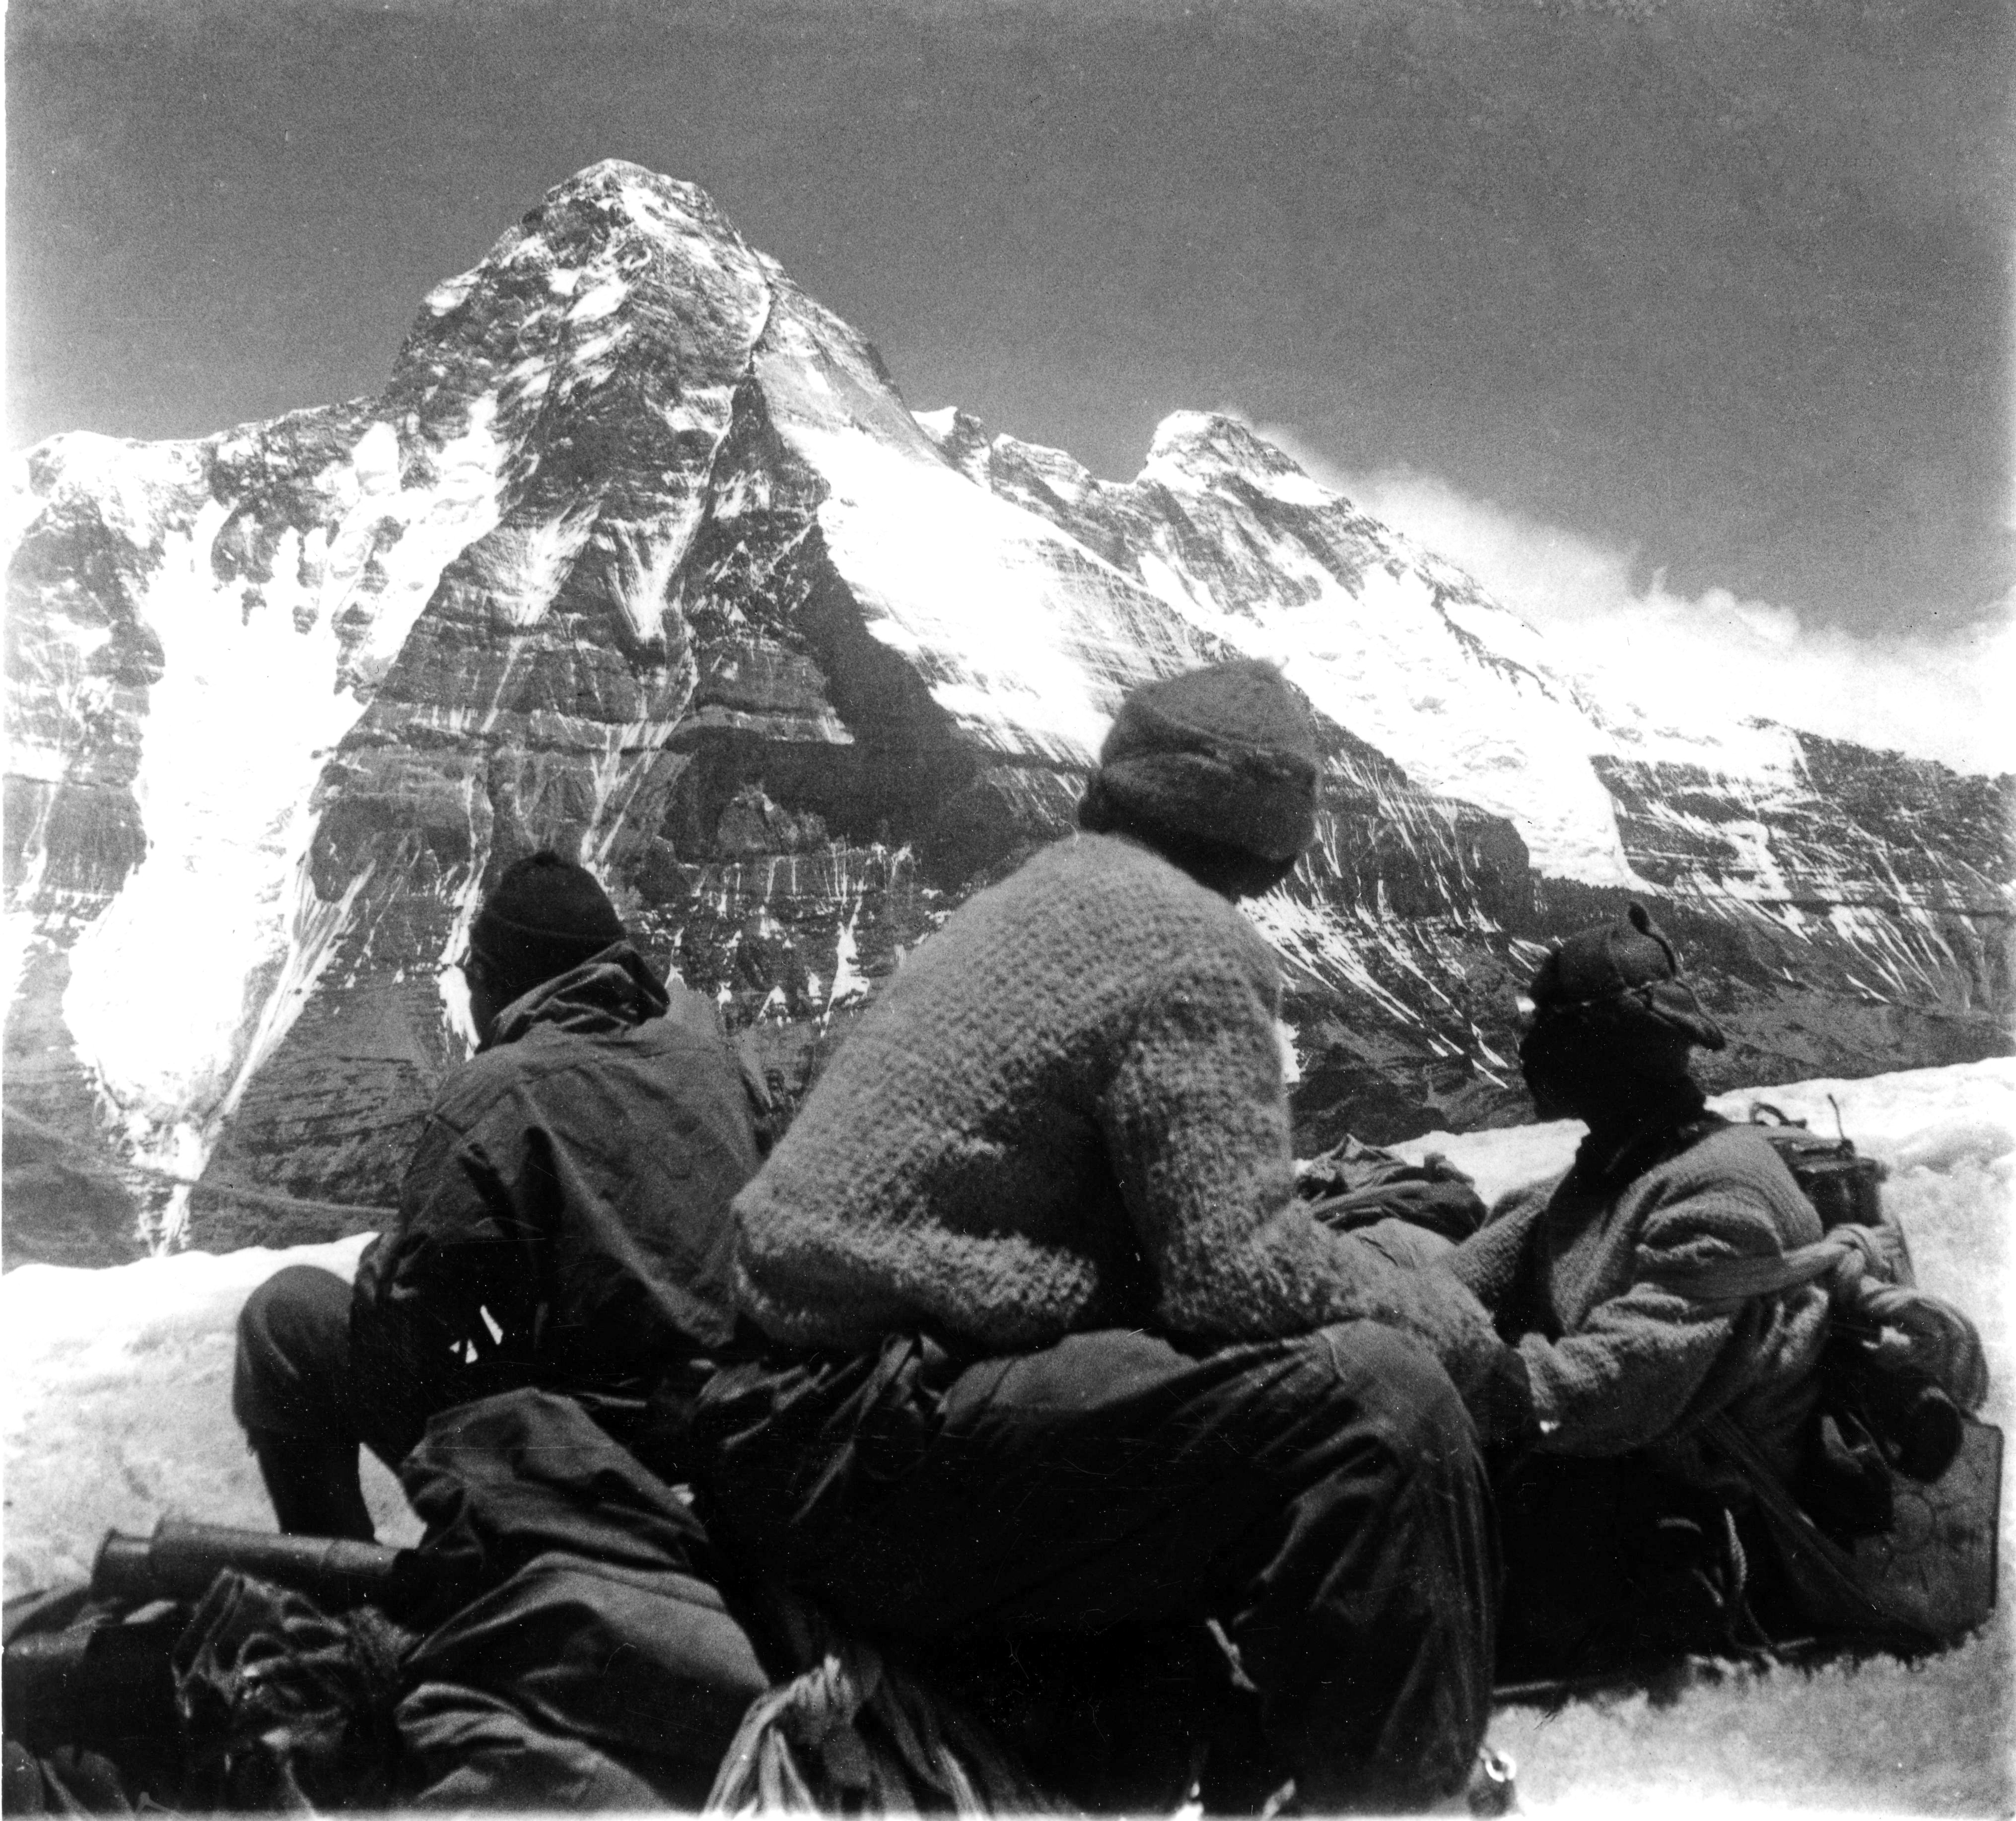 A view of Nanda Devi (7816m) from snow camp on Devistan I (6678m) at about 6100 meters. [Photo] Suman Dubey collection